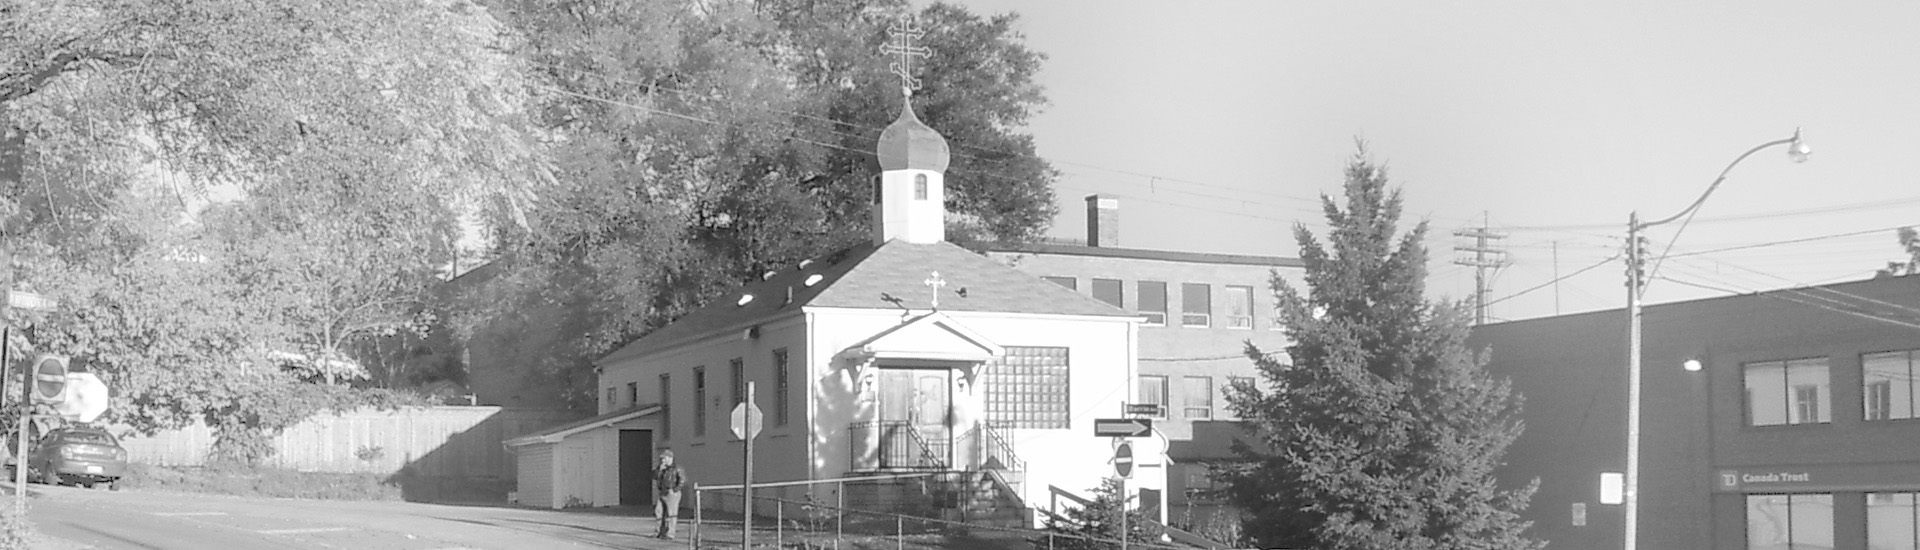 churchonwinona Inc.